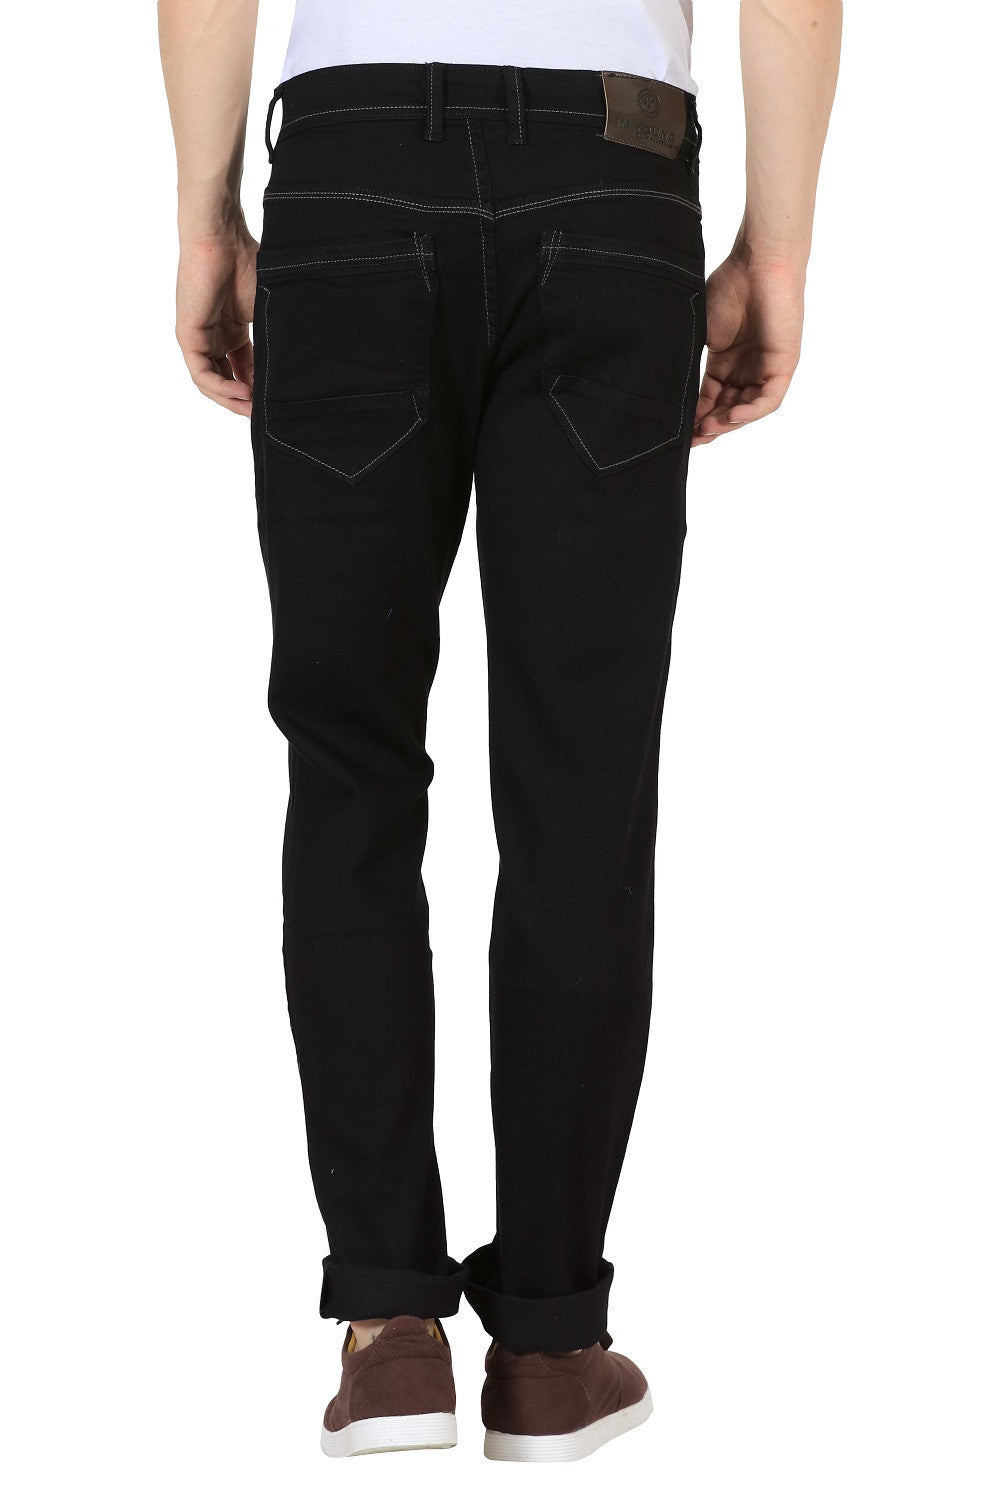 IMYOUNG Black Slim Fit Jeans